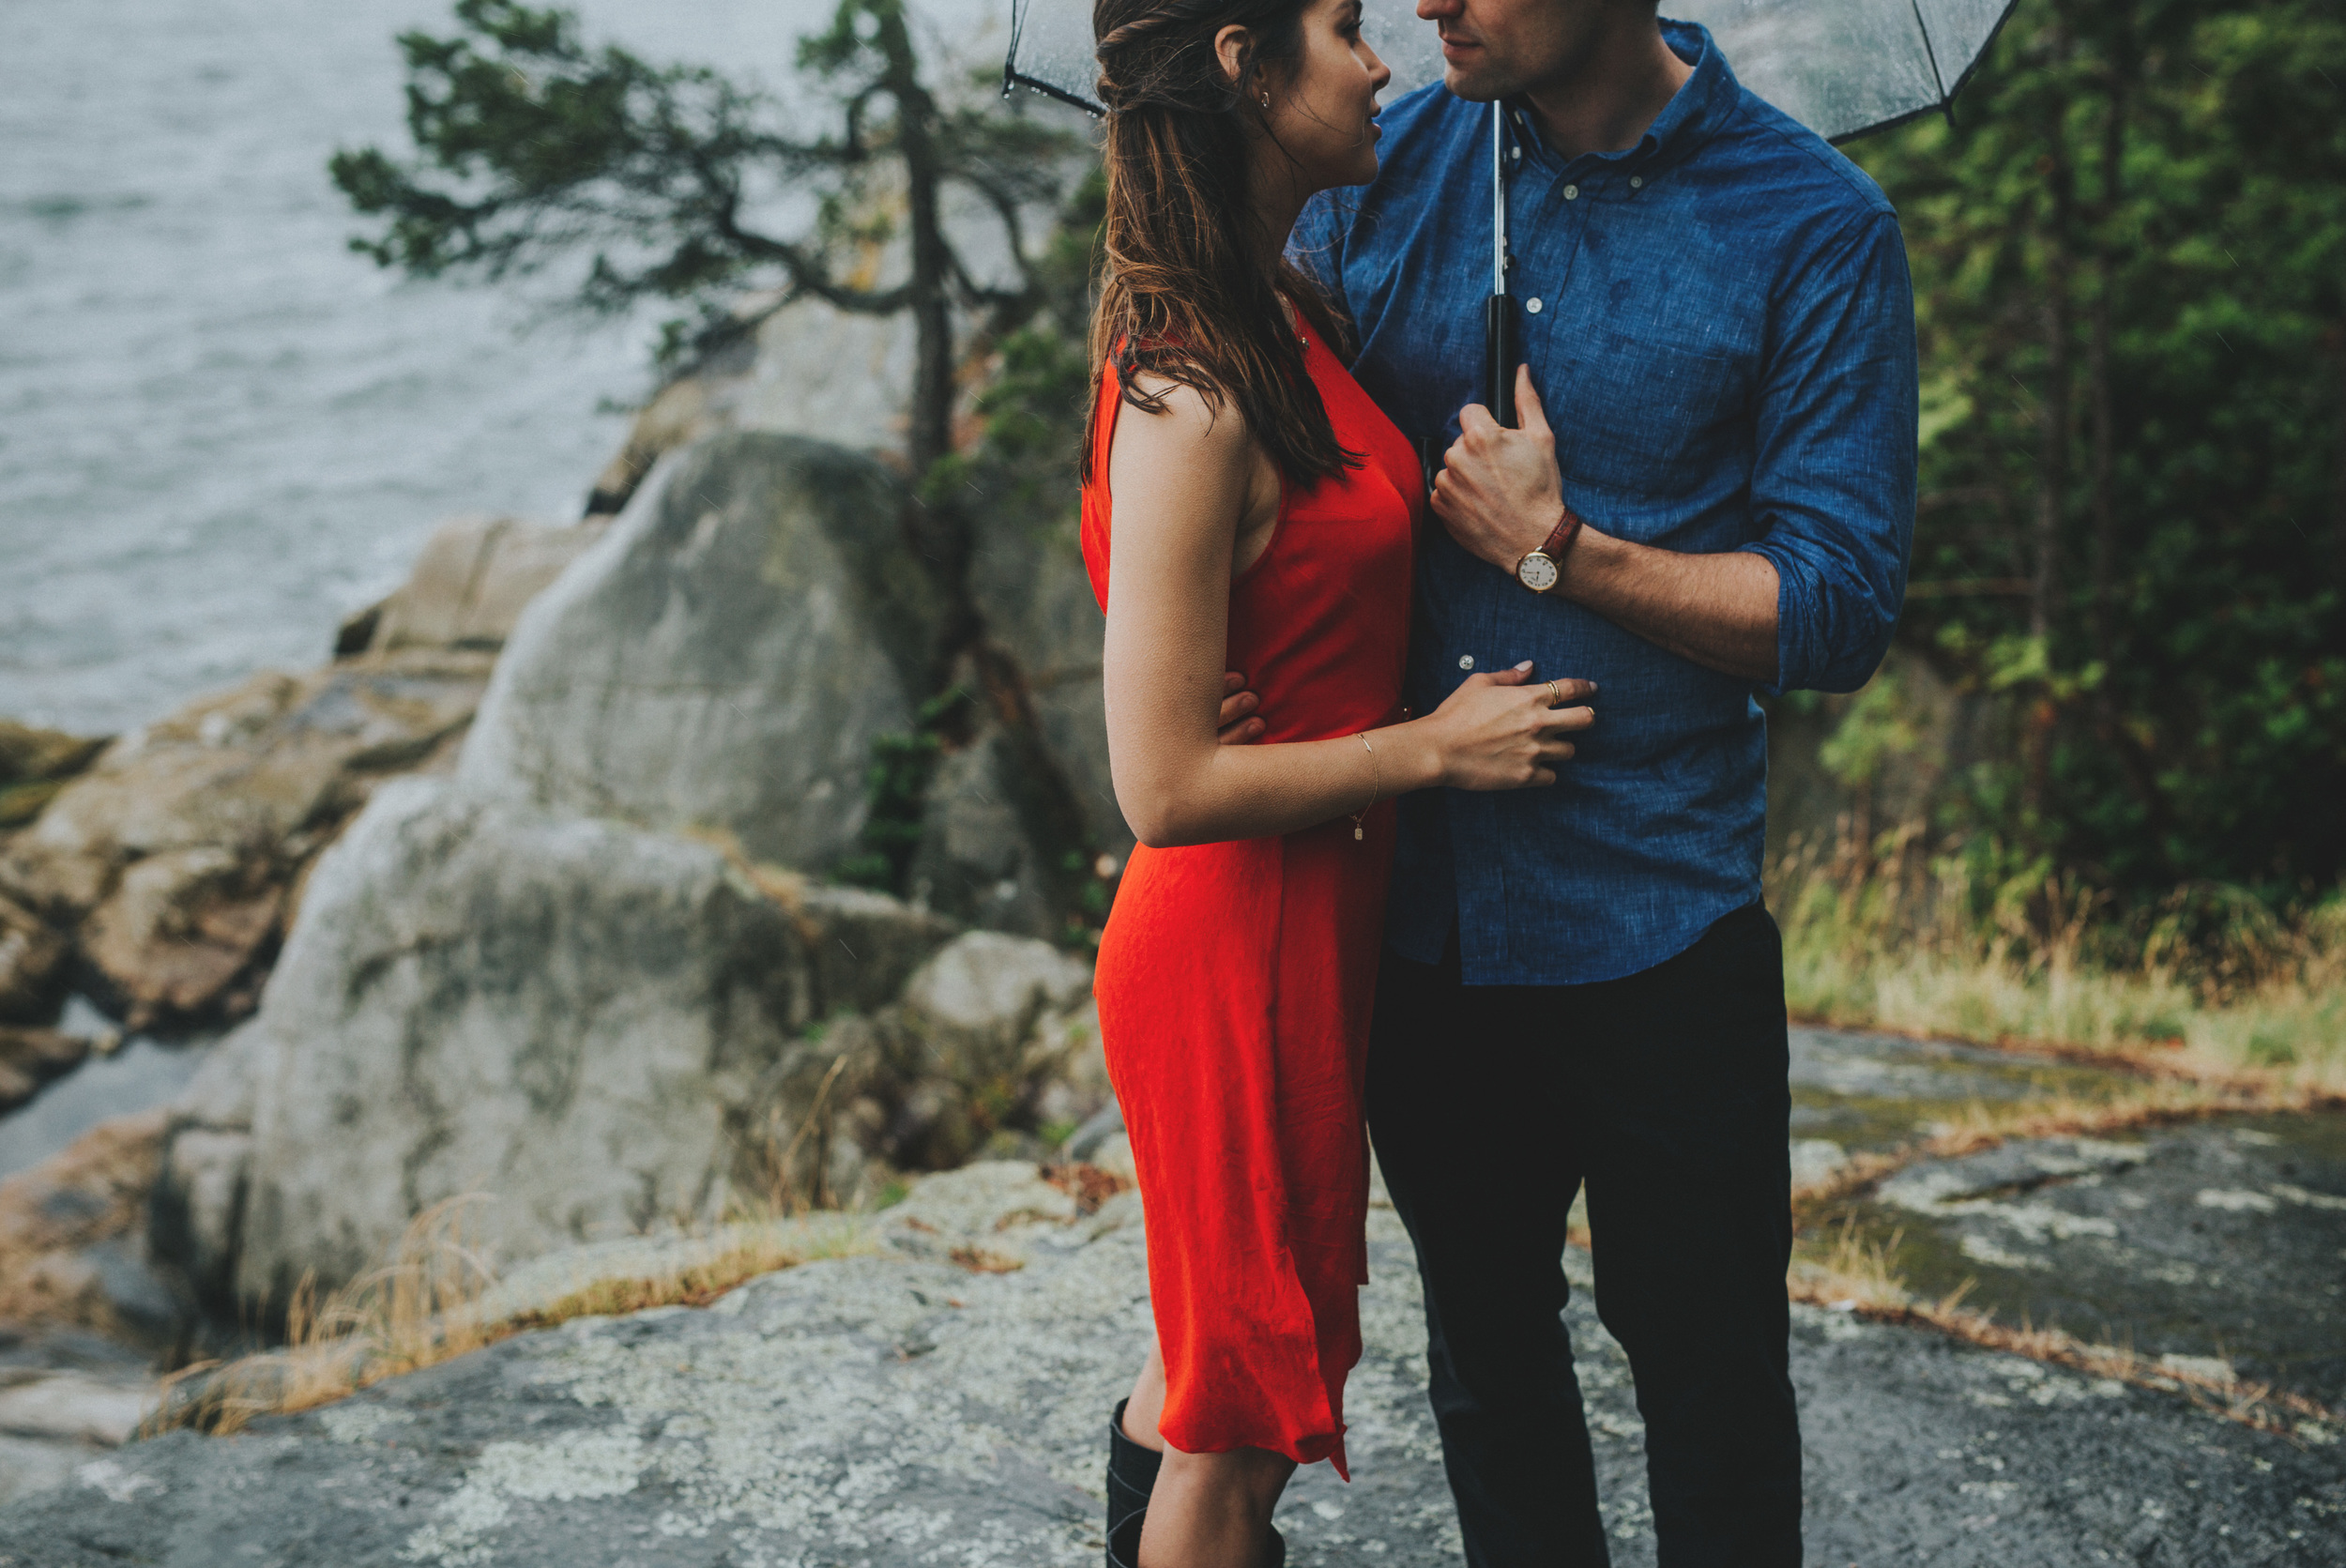 IMG_0538 LIGHTHOUSE PARK ENGAGEMENT PHOTOS VANCOUVER WEDDING PHOTOGRAPHER JENNIFER PICARD PHOTOGRAPHY.jpg